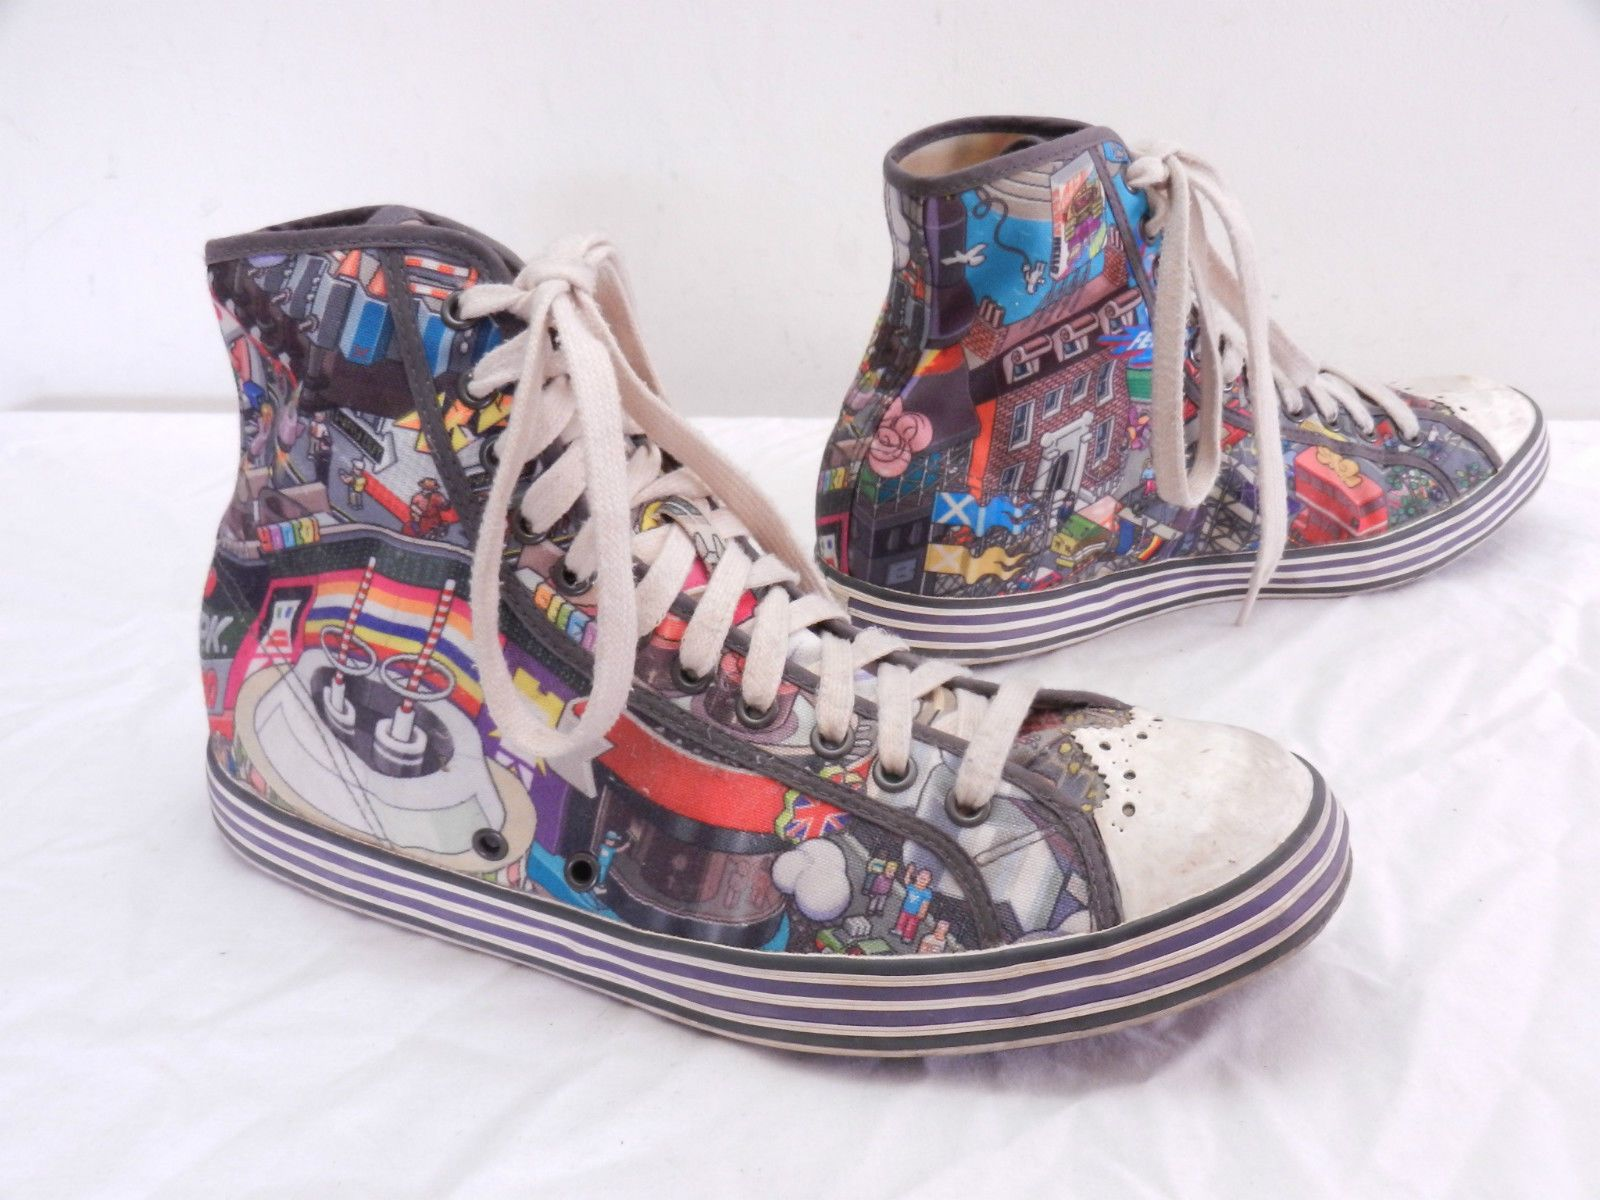 1d73ca0b4283 Cool Mens UK 9 US 10 PAUL SMITH  Torta  Converse Styled Hi-Top ...